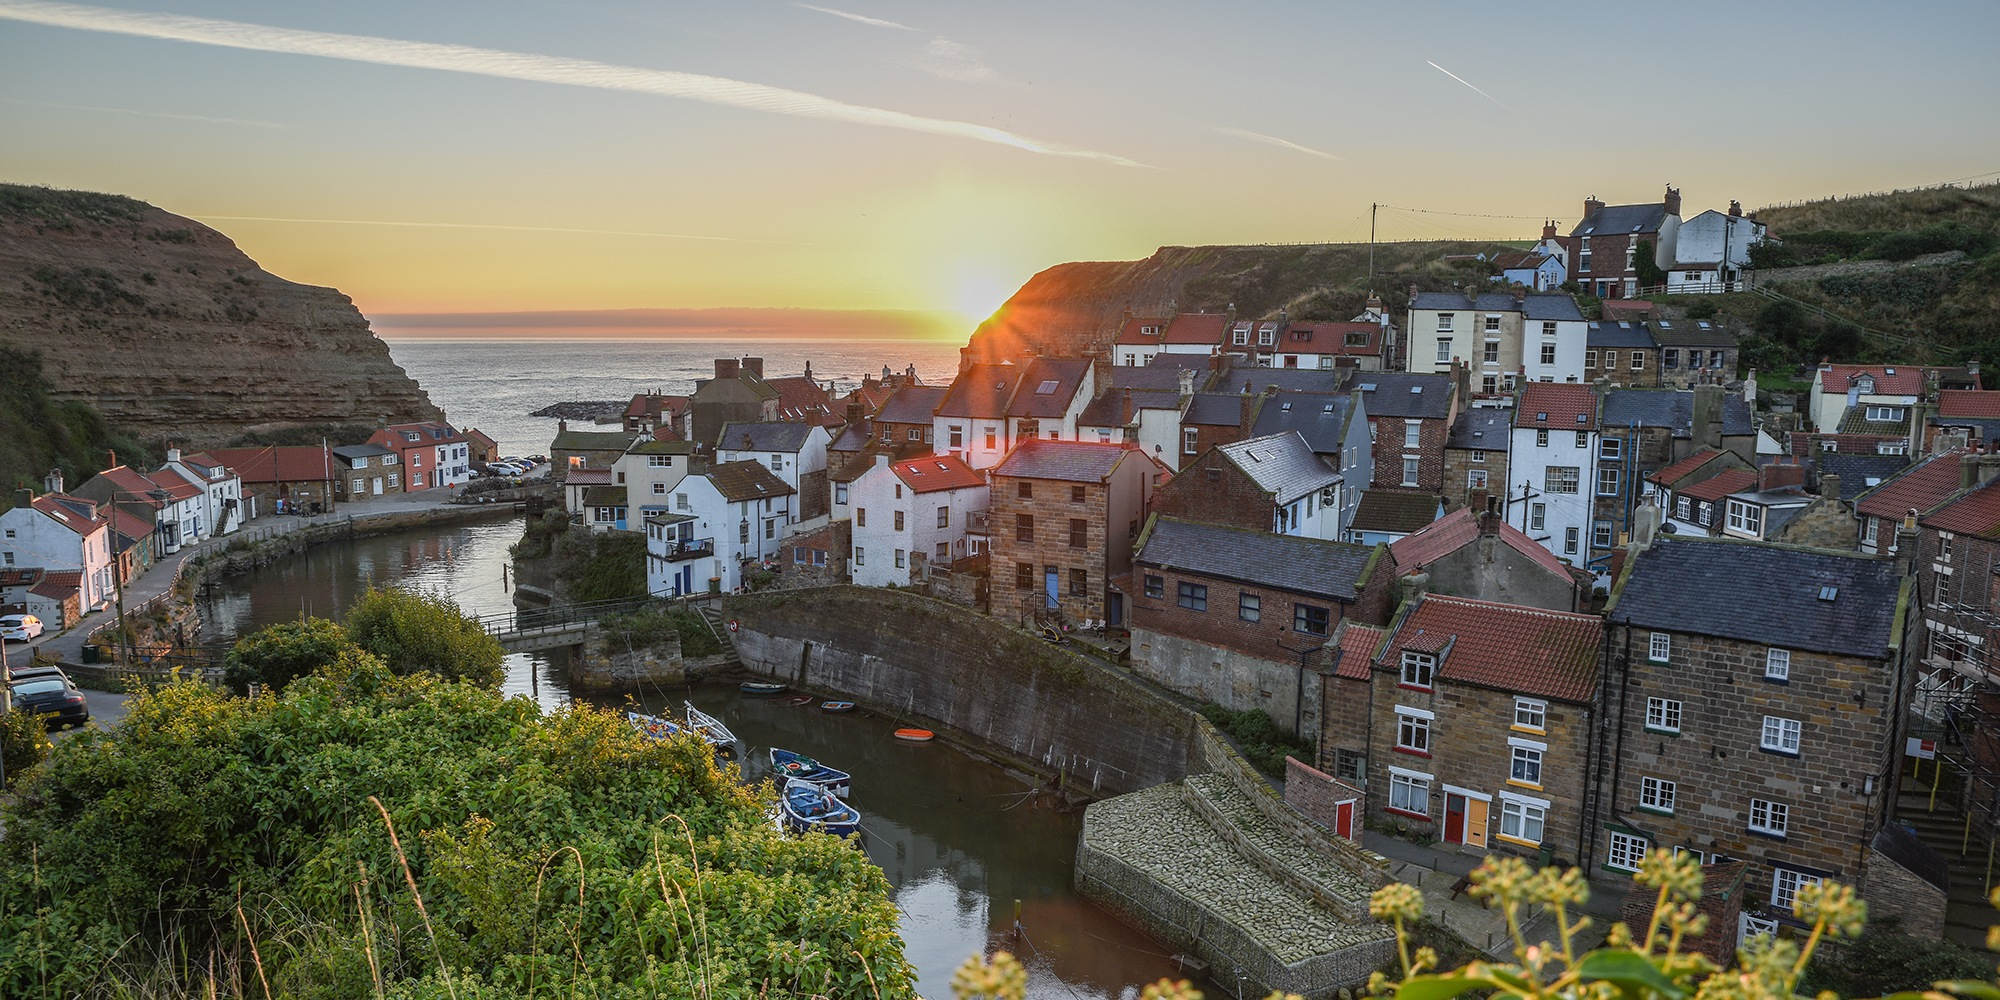 Sunrise at Staithes by jonkennard